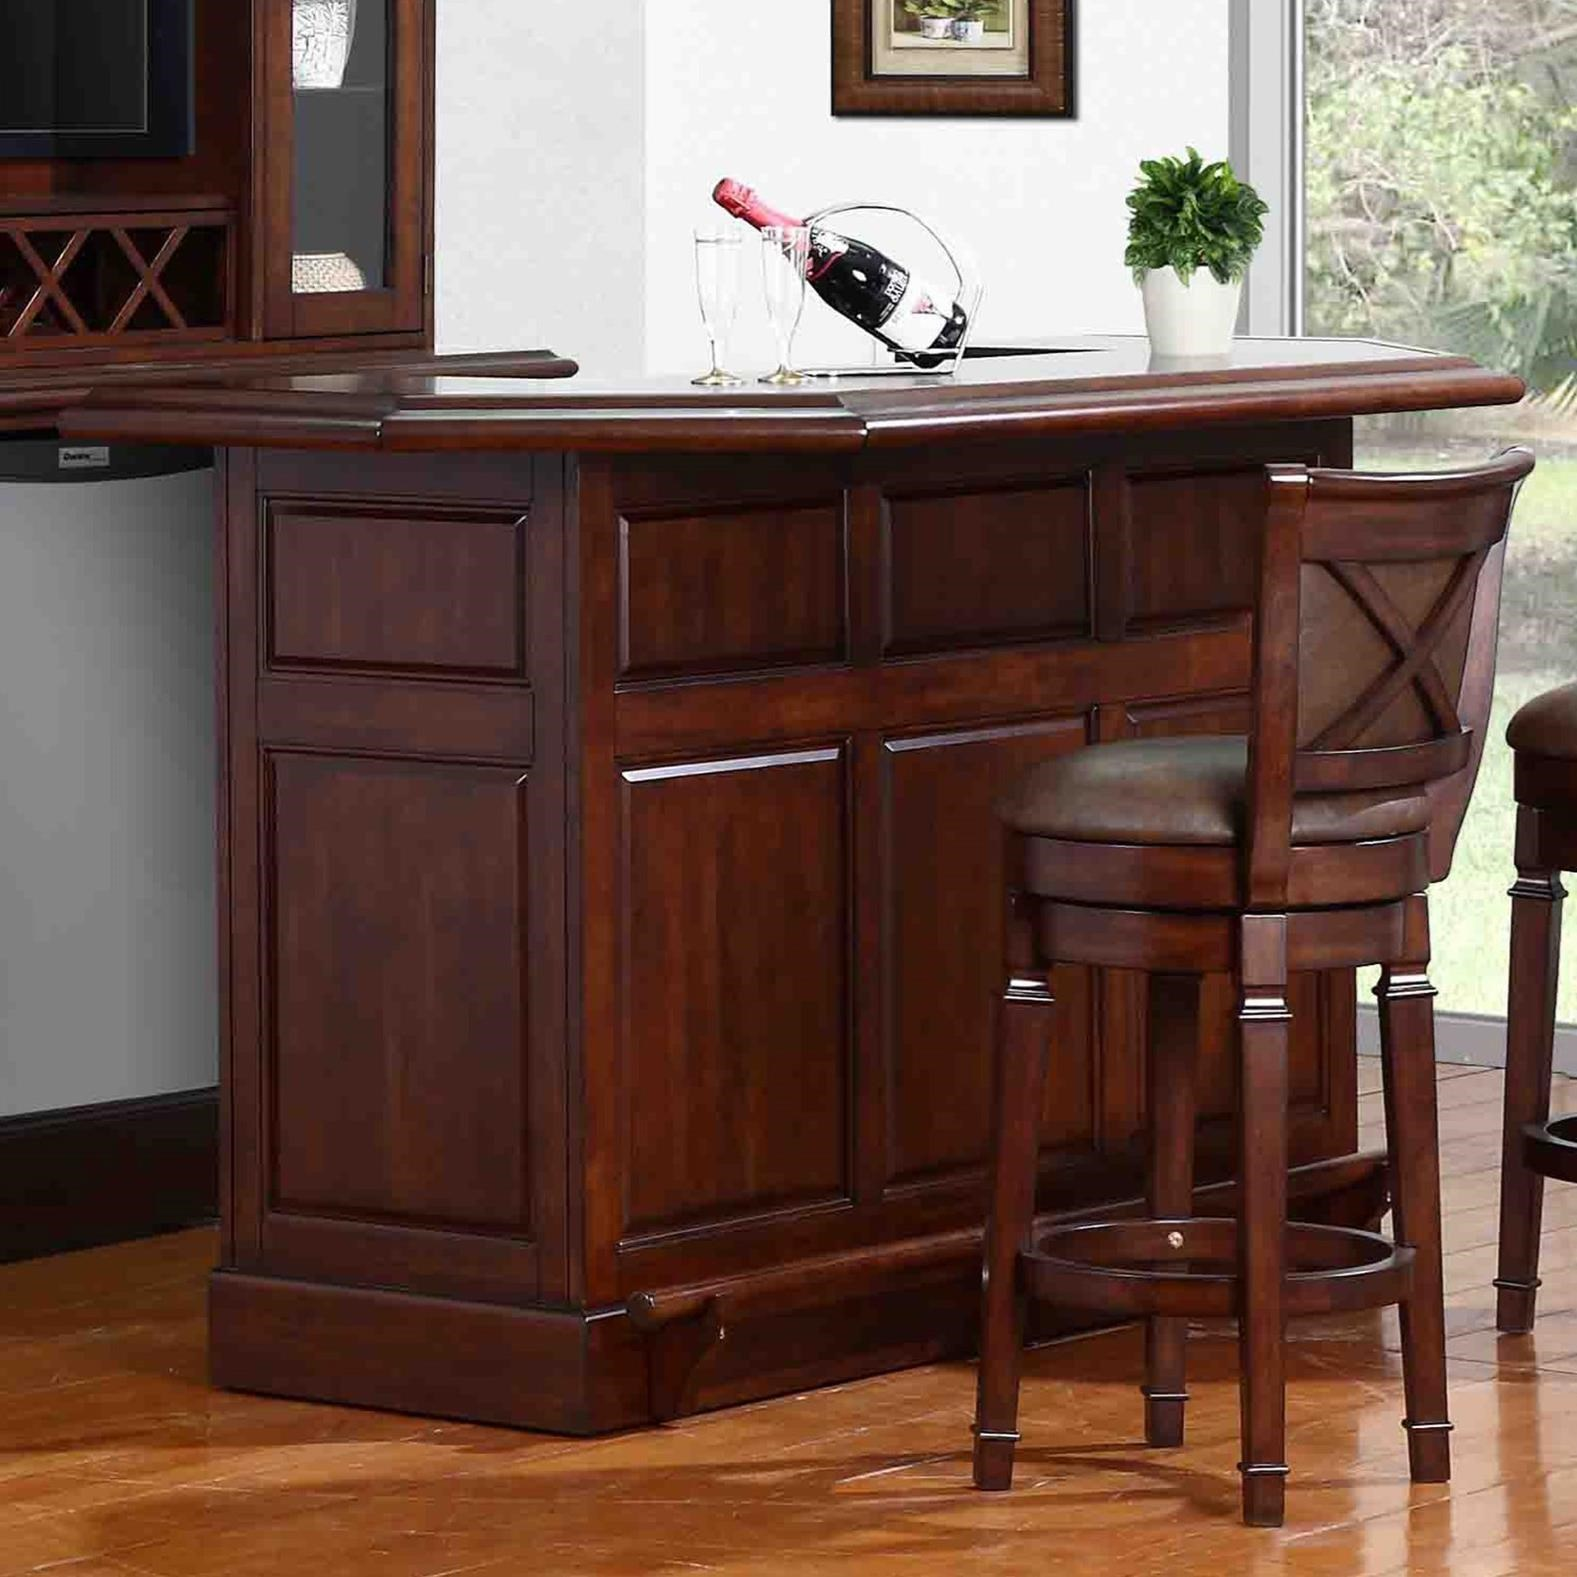 Belvedere-0411 Bar by E.C.I. Furniture at Northeast Factory Direct